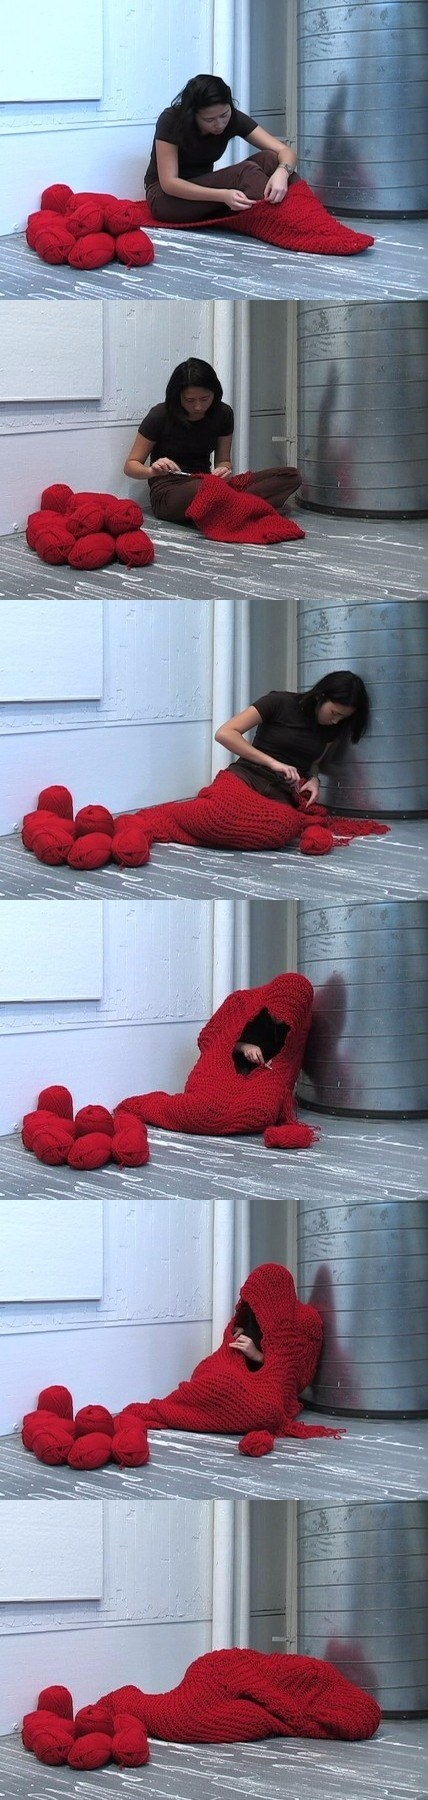 girl knits herself into red lump